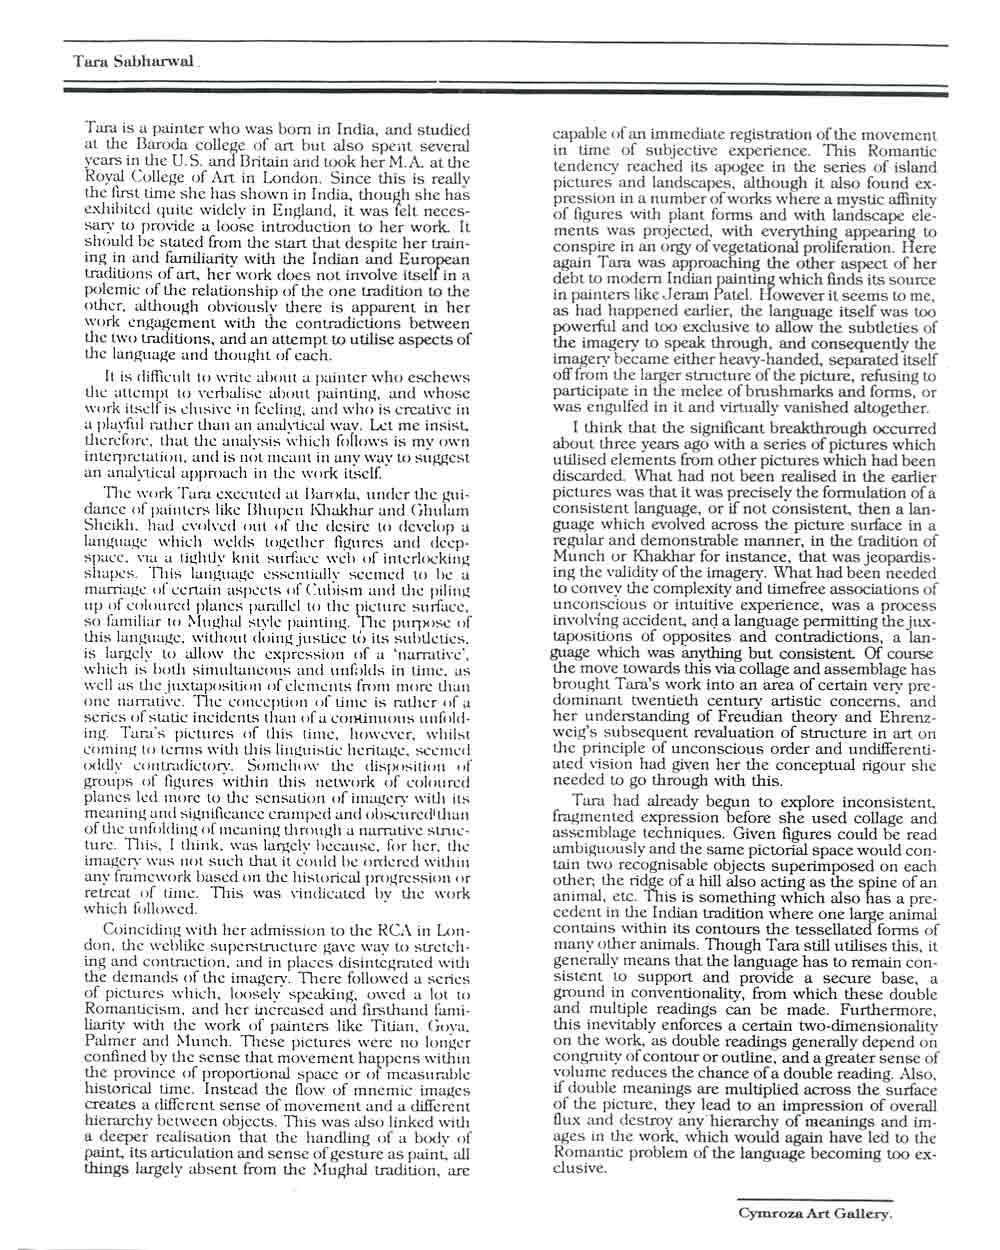 asian american essay sabharwal tara selected document a digital  sabharwal tara selected document a digital essay by ivan prescott pg 1